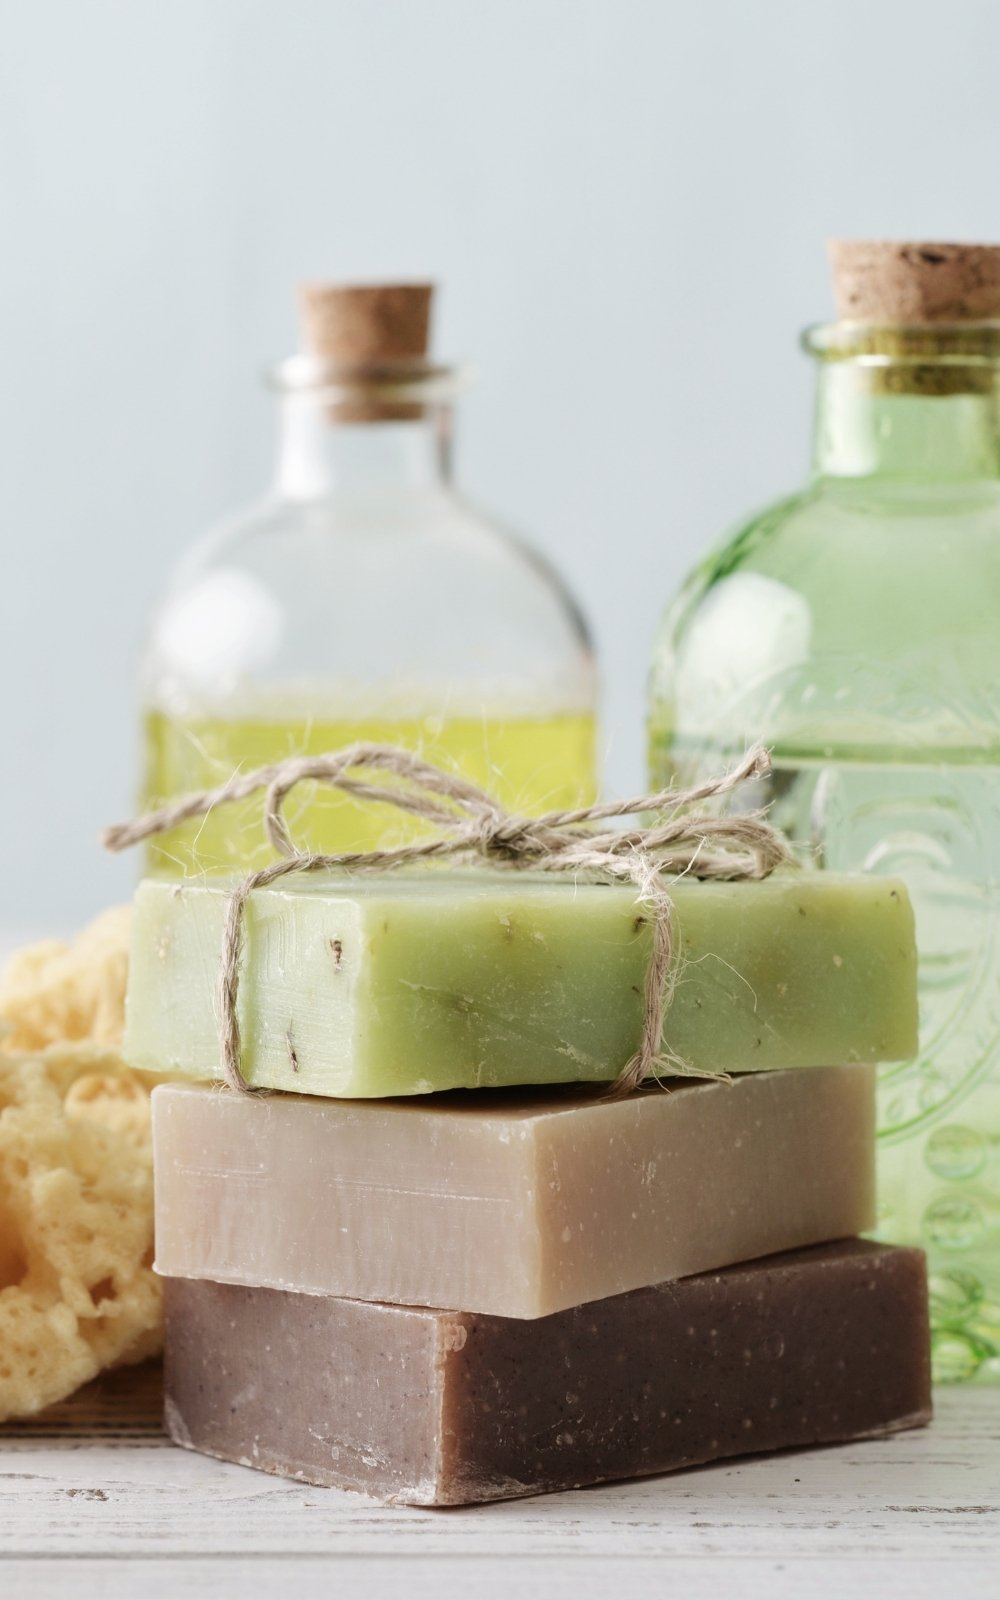 Natural beauty products, clean beauty products, featured image